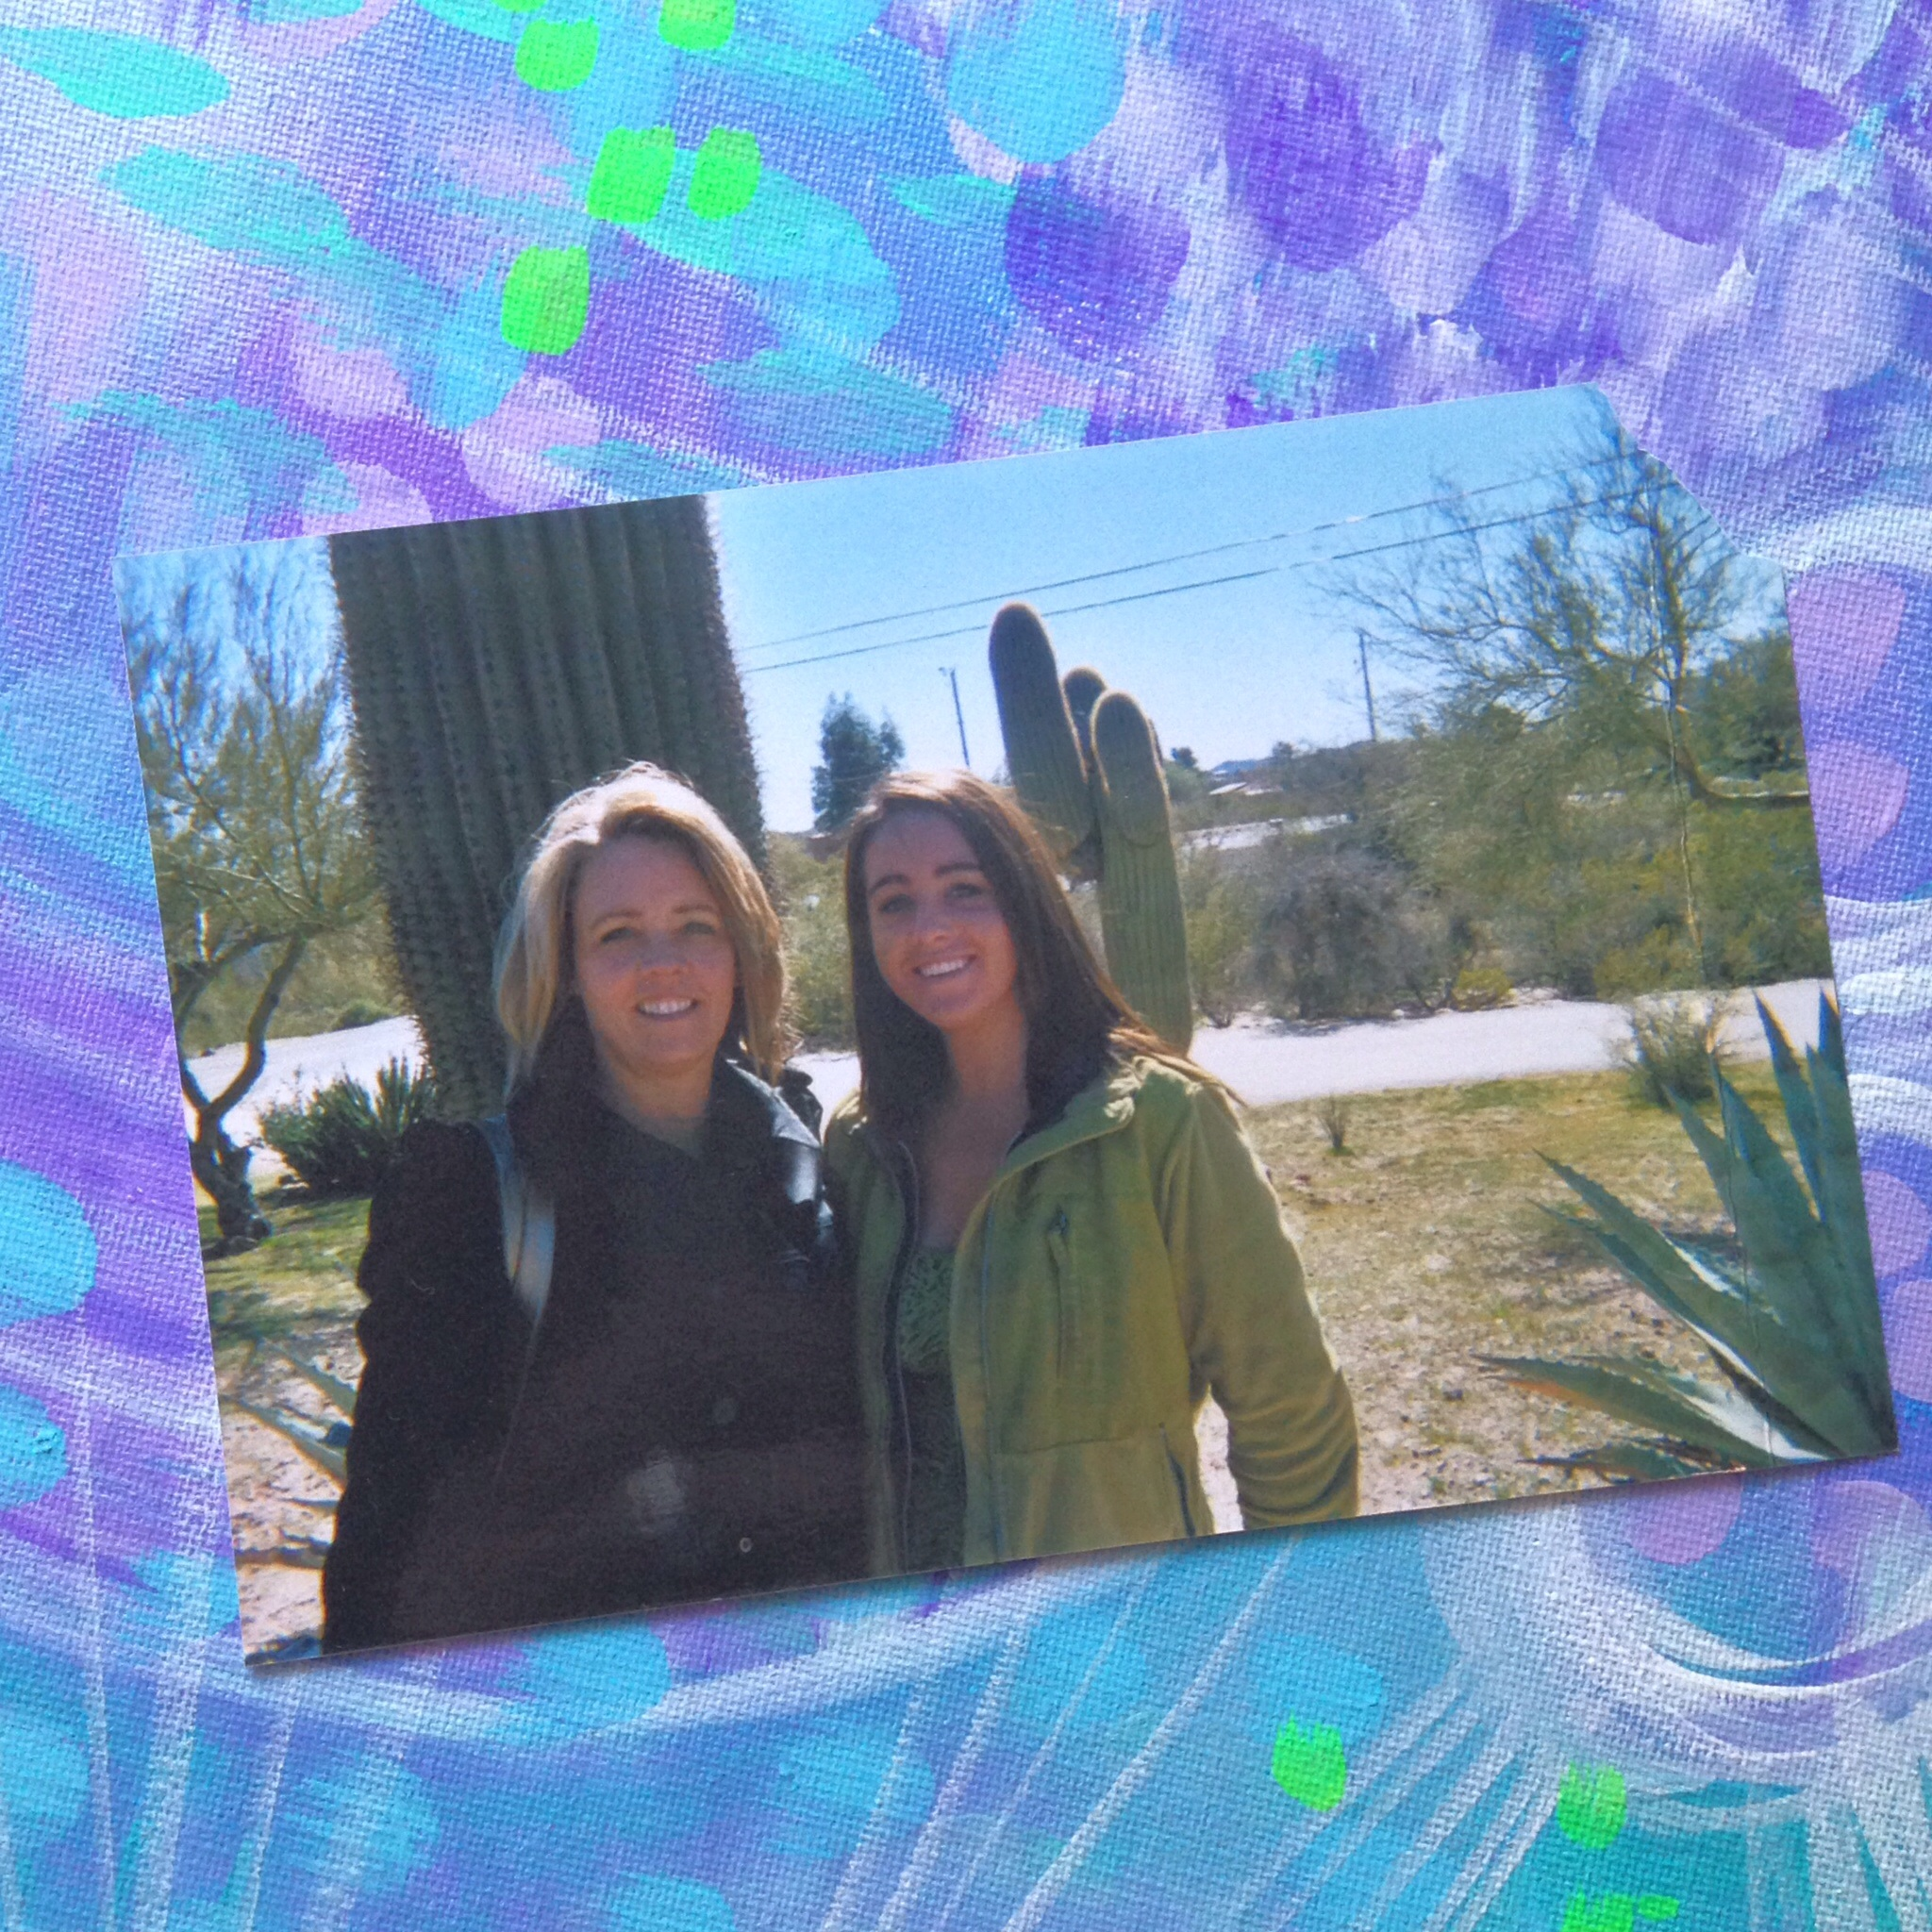 ((my mom and I in Arizona where I went to rehab at, this was about one month in when I started to smile again))